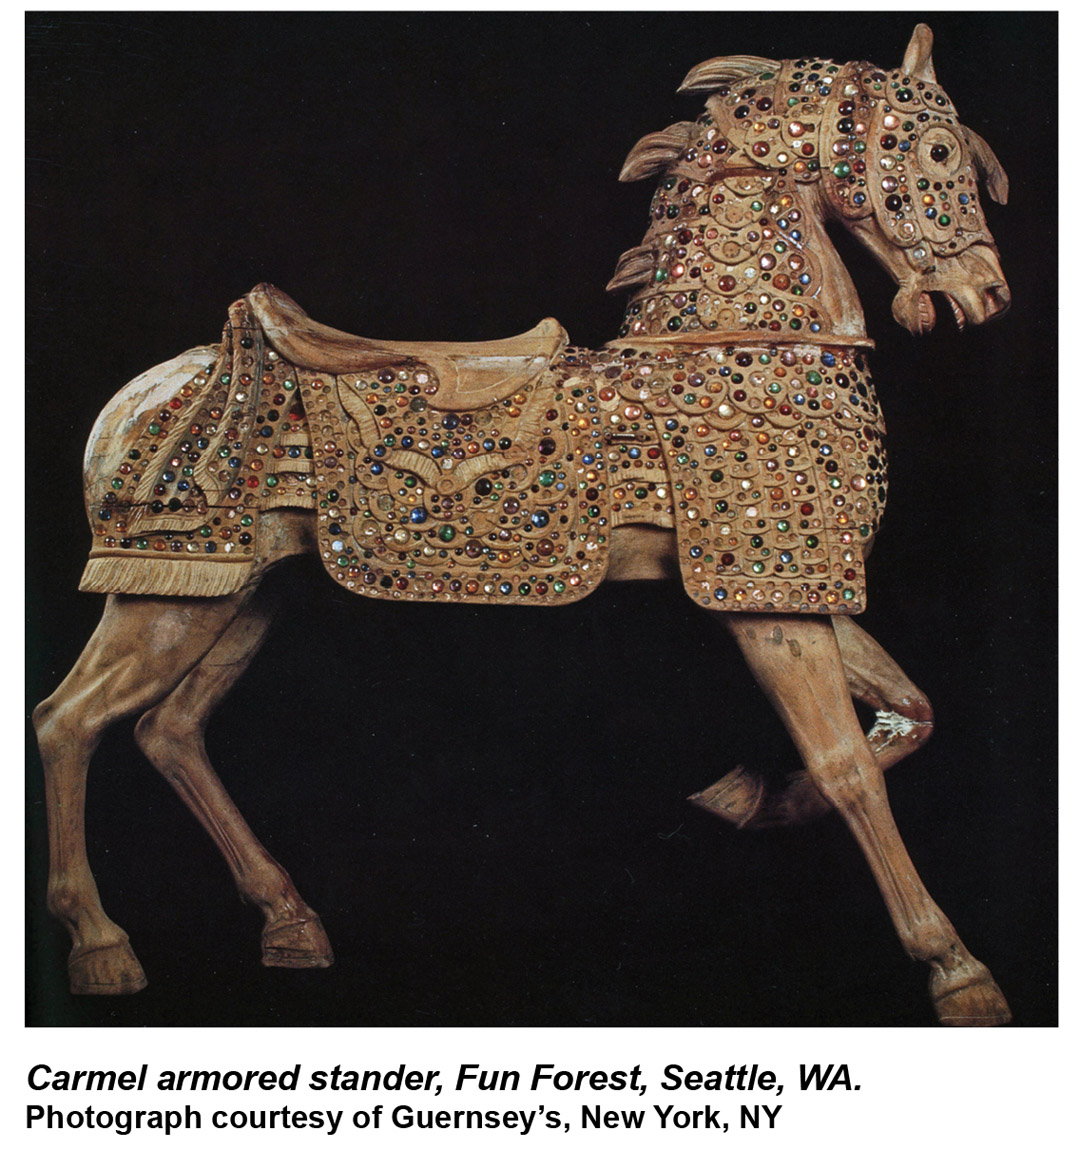 Fun-Forest-Carmel-Borrelli-jeweled-armored-carousel-horse-Guernseys-1989-catalog